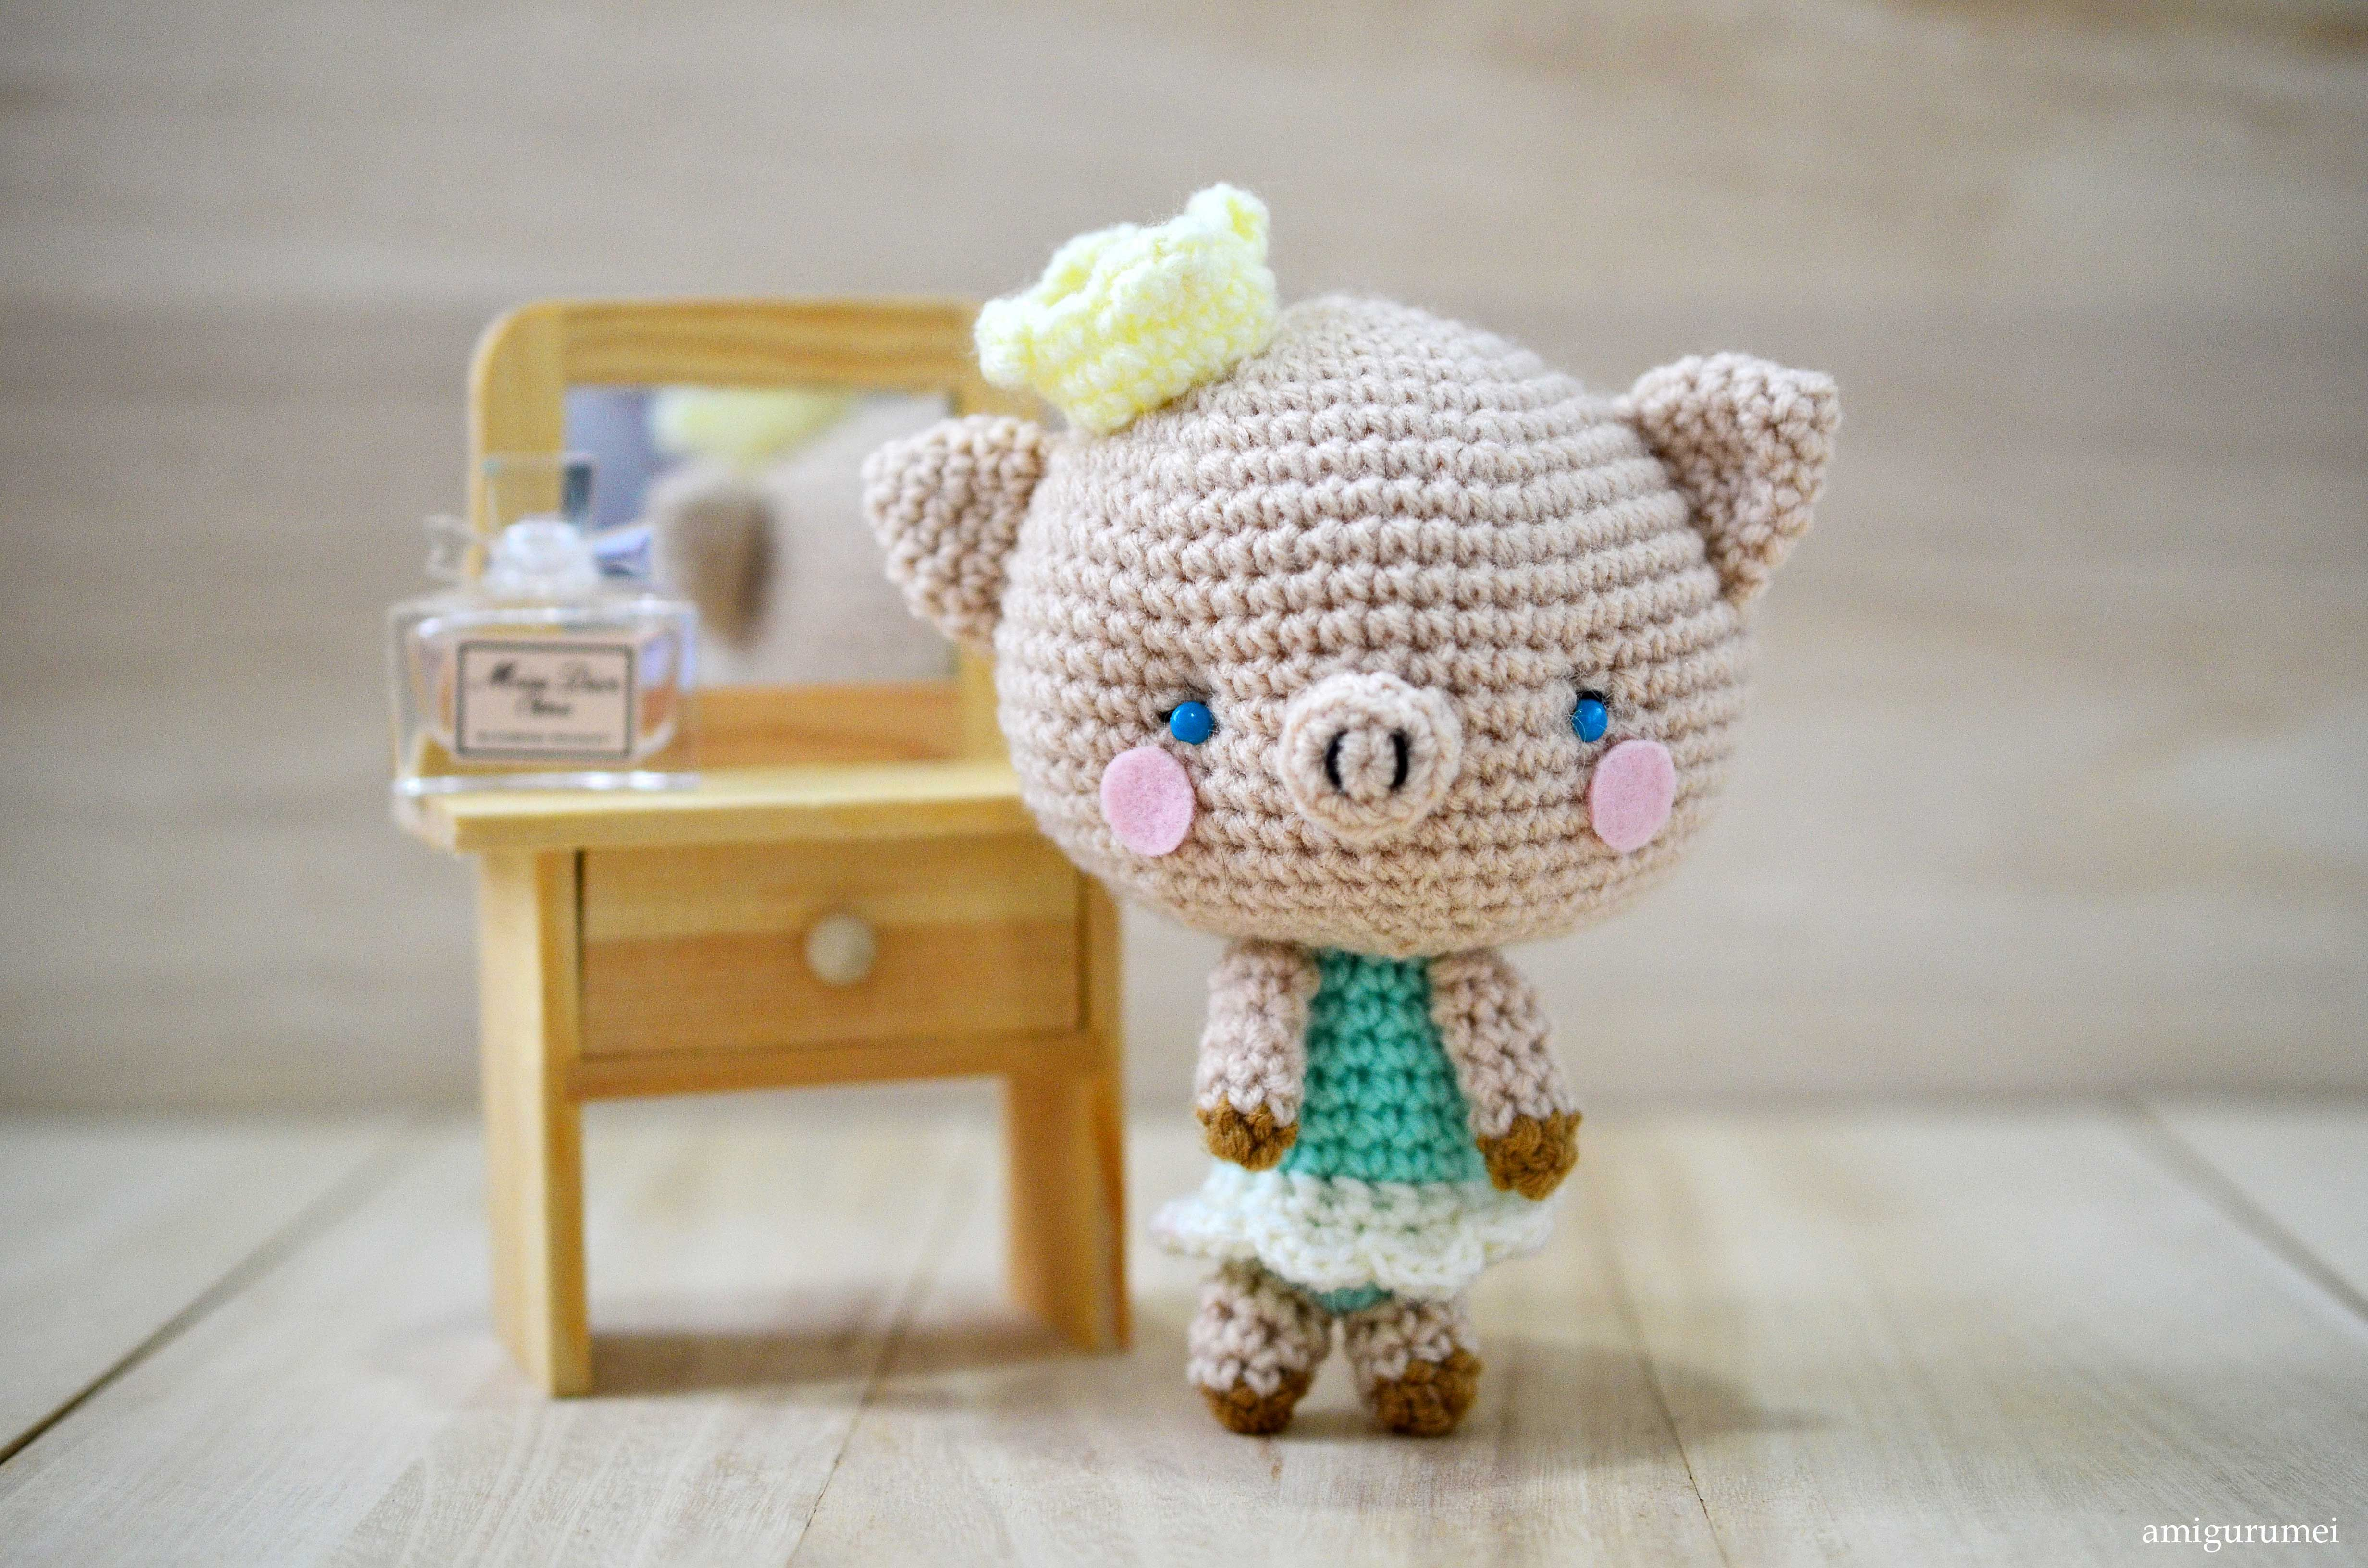 Piglet Amigurumi Free Pattern : Make your own sweet princess p piglet amigurumi! free pattern by